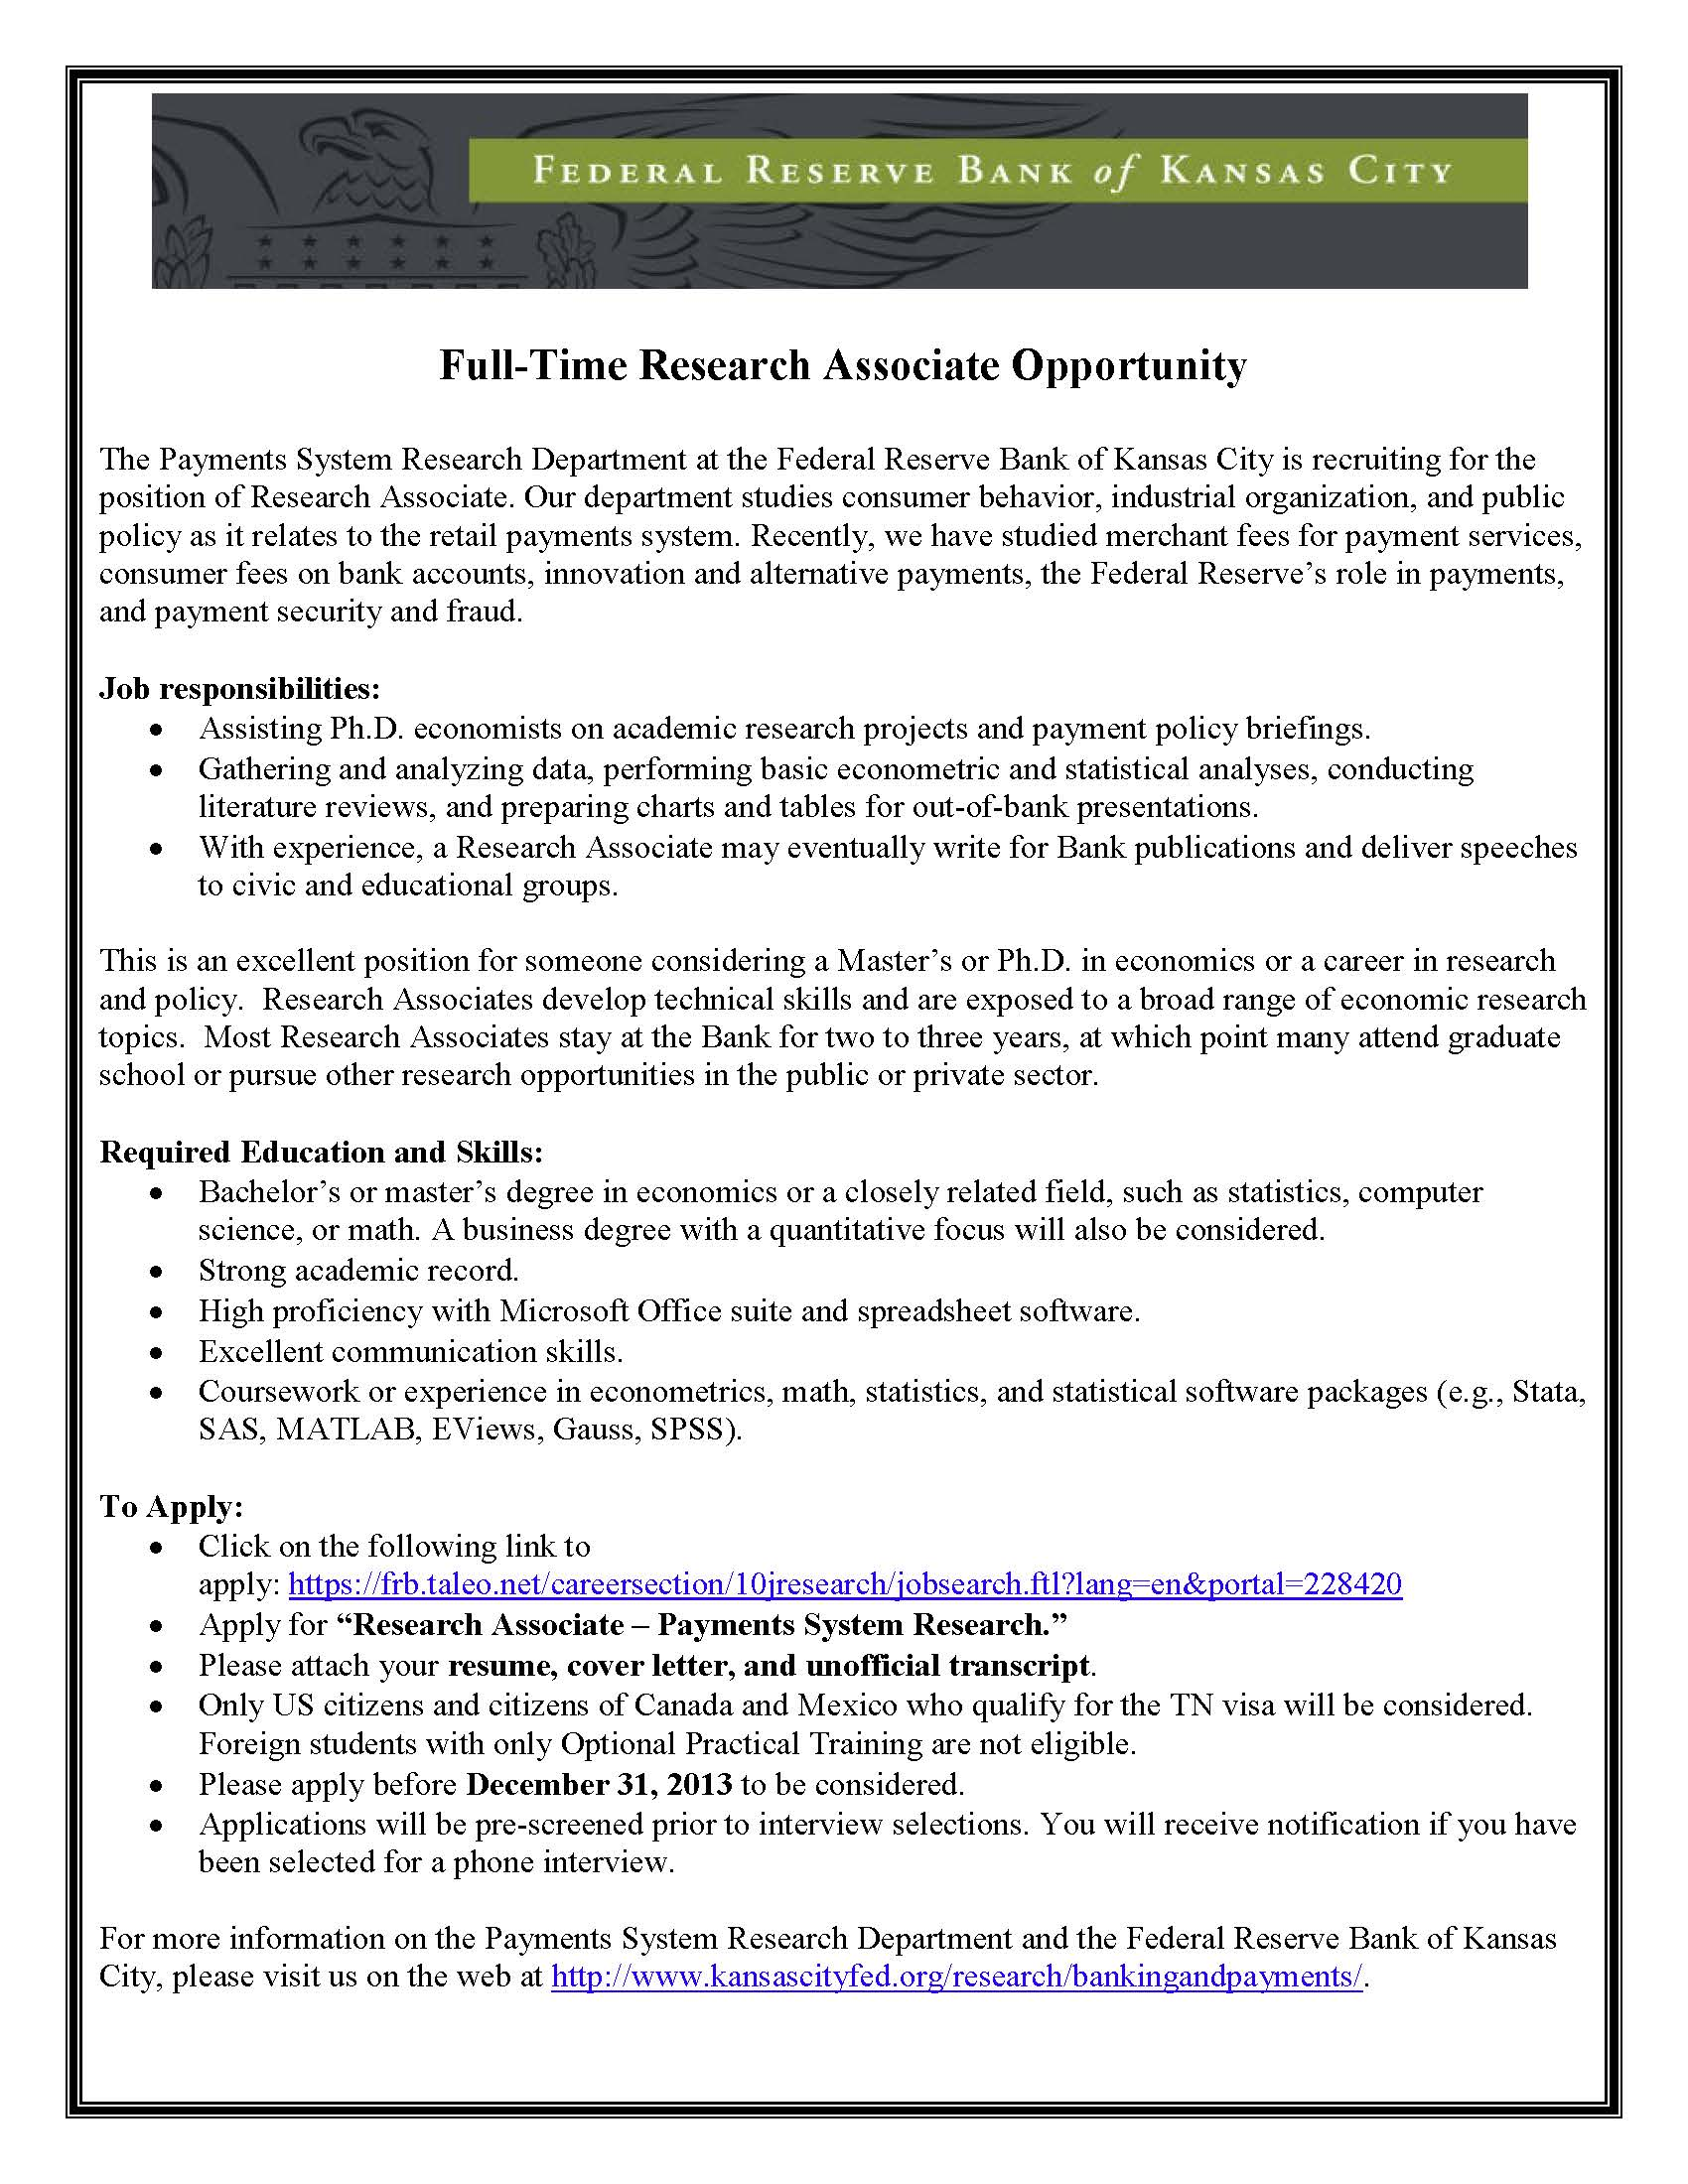 research associate opportunity  u2013 federal reserve bank of kansas city  u2013 career connection